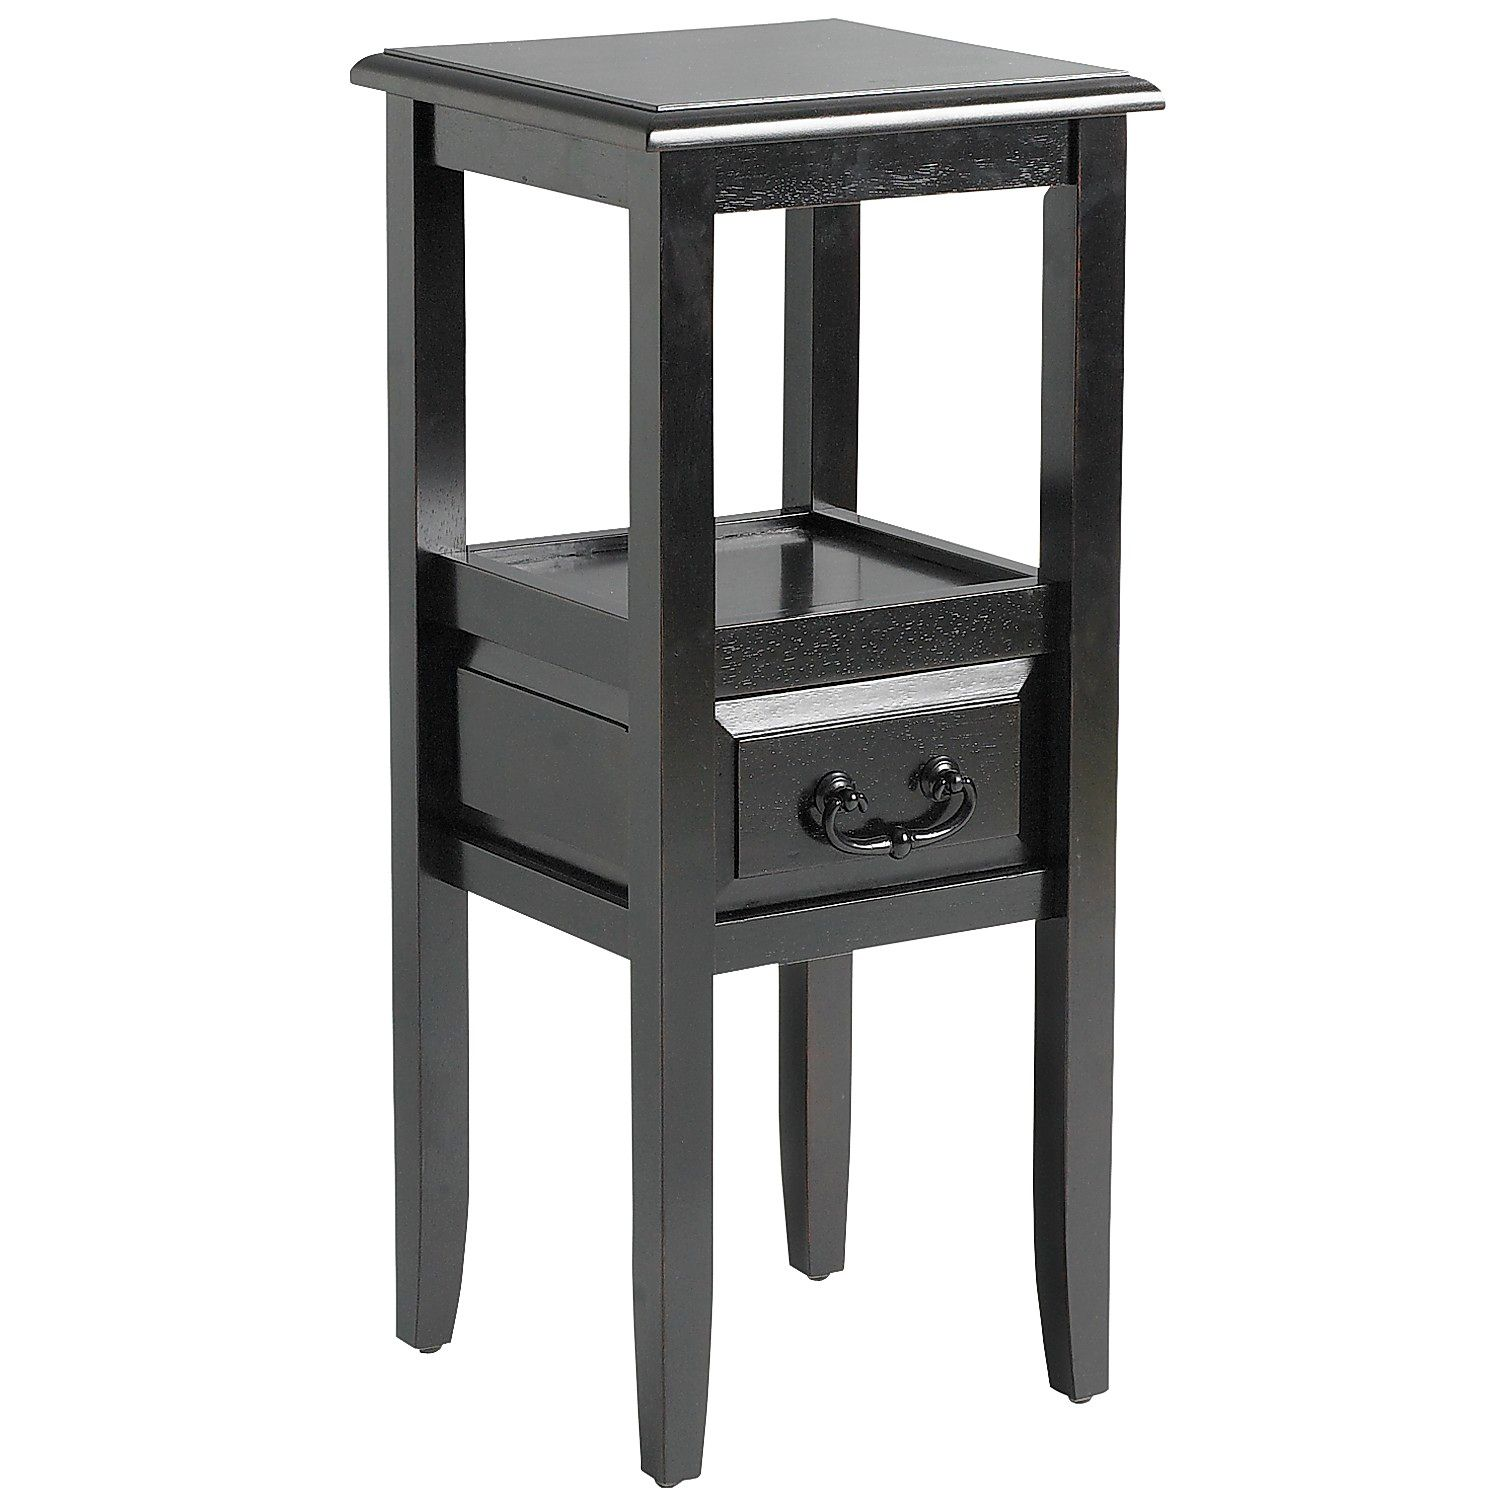 anywhere rubbed black pedestal table with pull handles pier imports one accent marble side tables living room patterned chairs metal frame end decorative boxes lids urn lamp solid